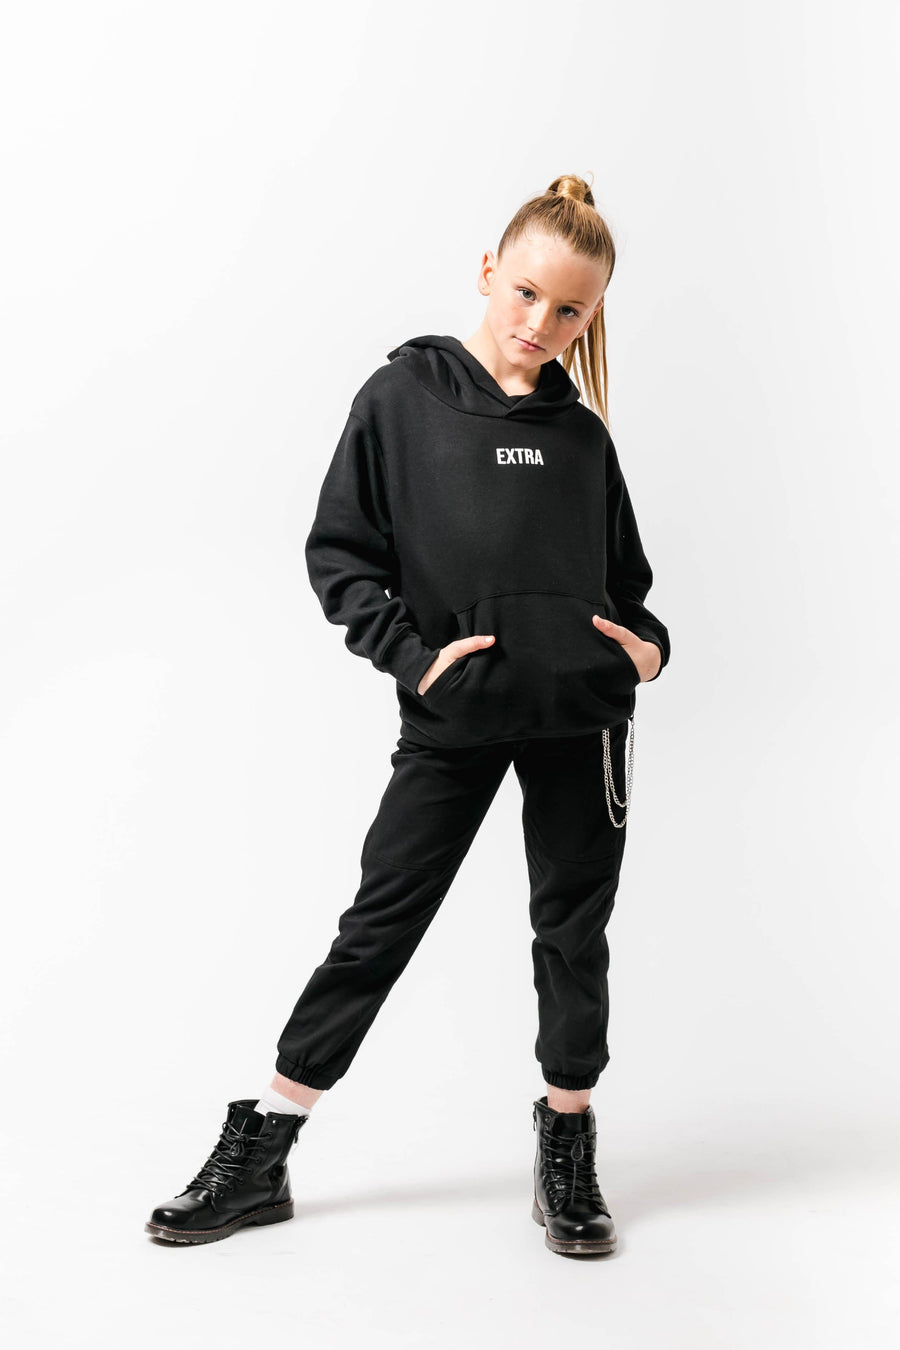 Extra Loose fit Hoody Black Little Attitude